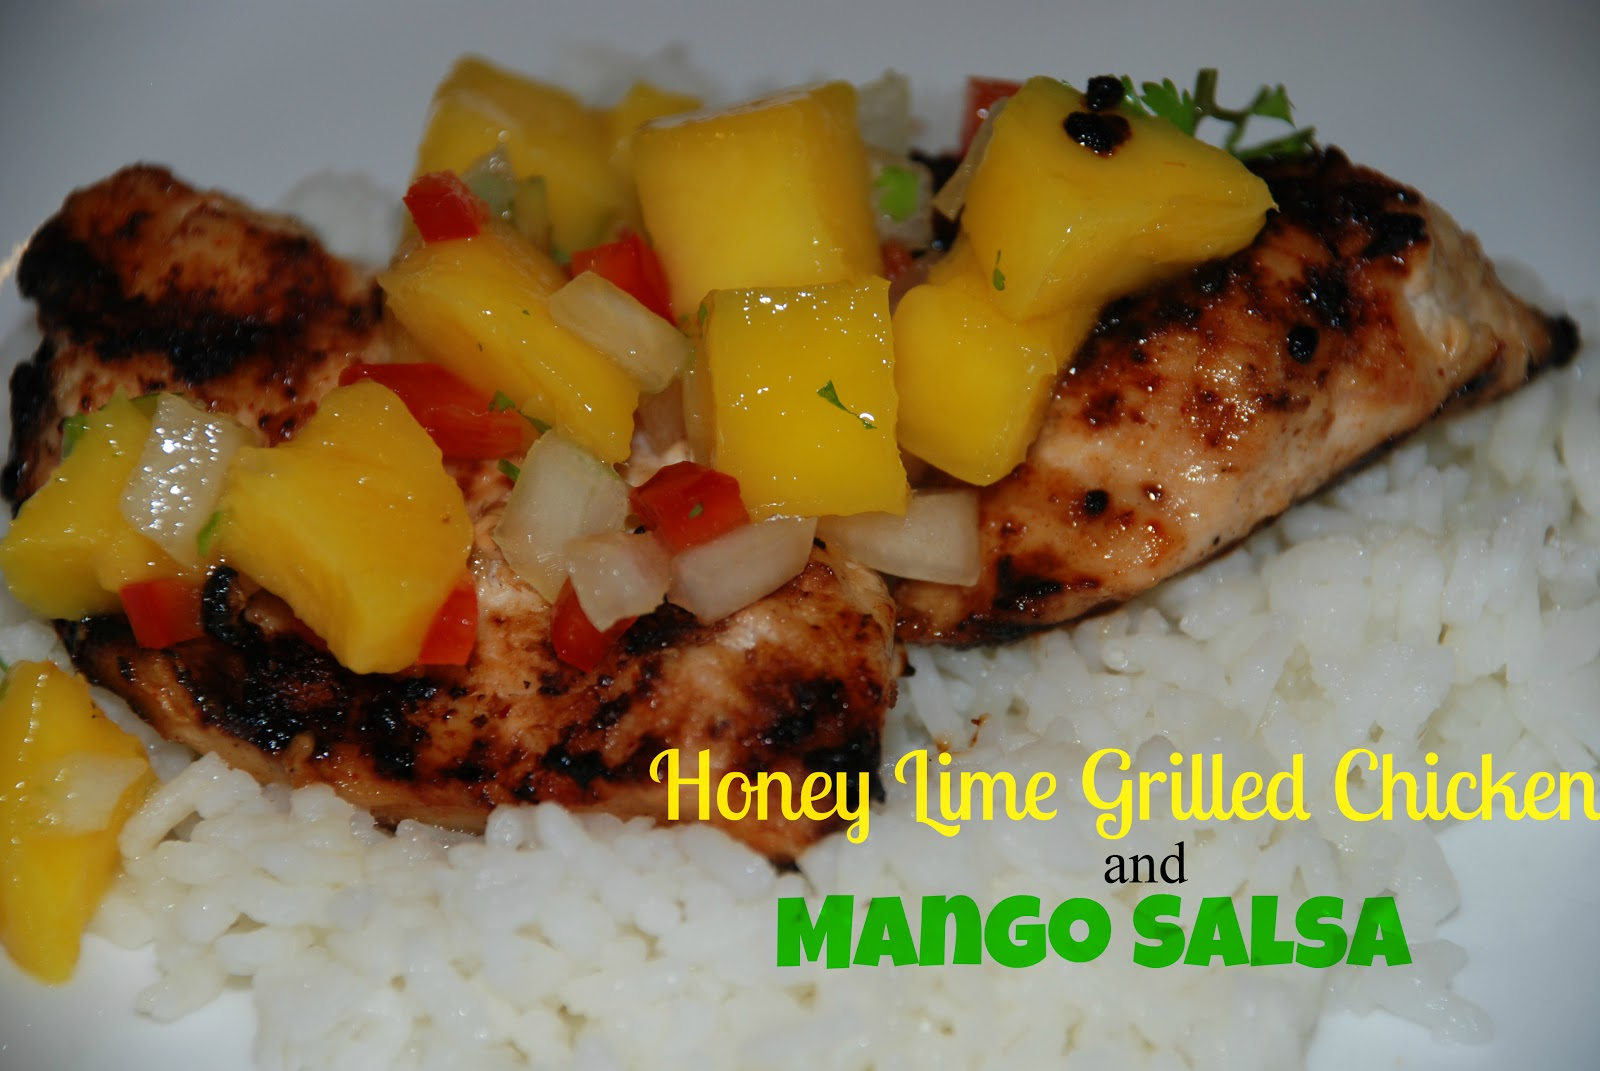 Tada's Kooky Kitchen: Honey Lime Grilled Chicken & Mango Salsa